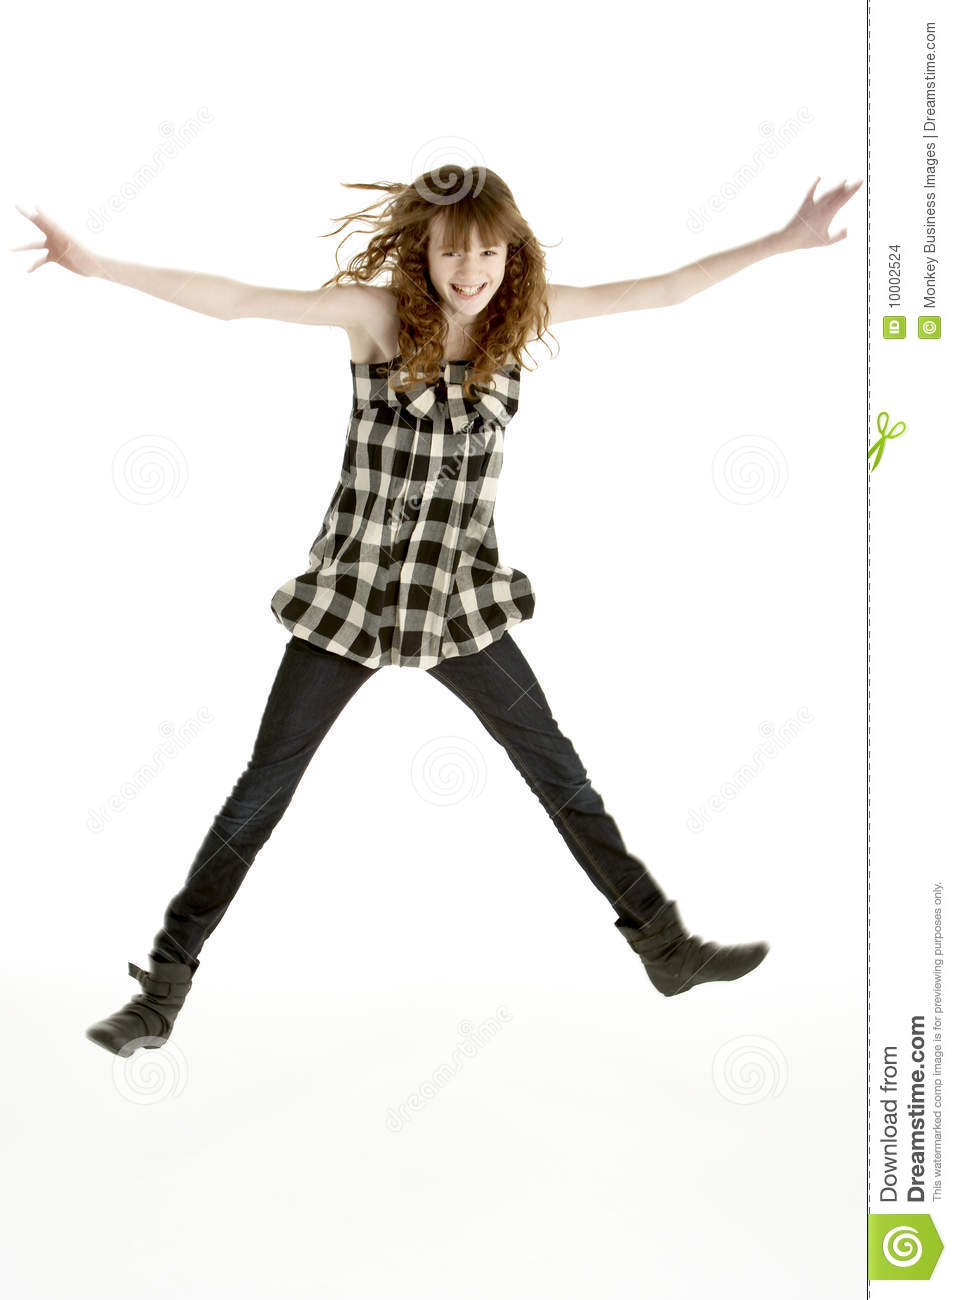 Young Girl Jumping In Air